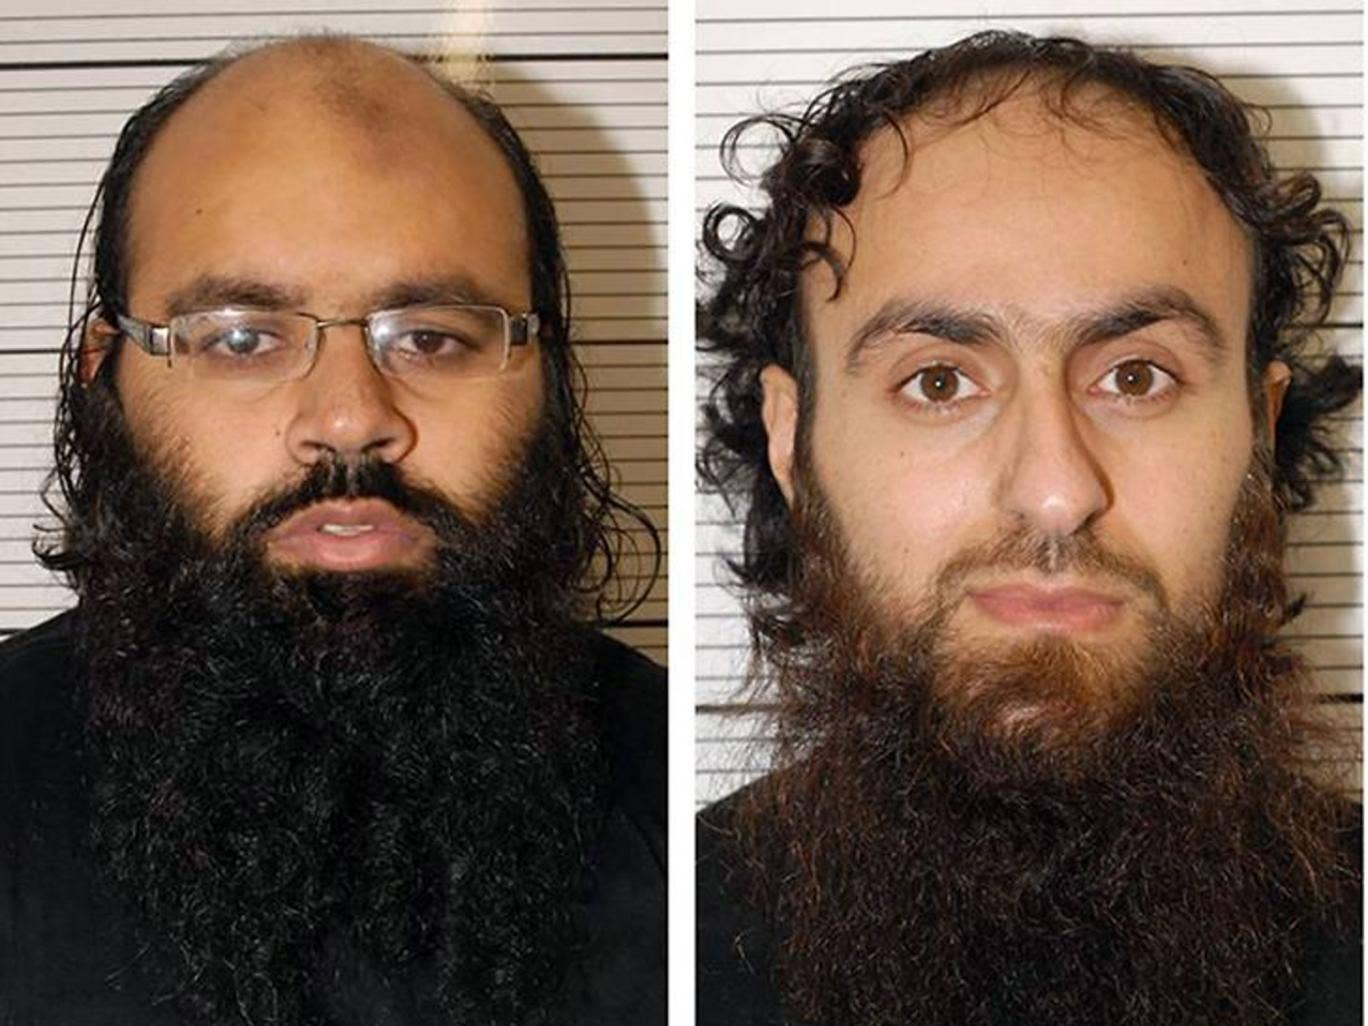 Police photos of terrorist plotters Irfan Naseer (left), 31, and Irfan Khalid, 27, who were described as ringleaders in the Birmingham extremist plot